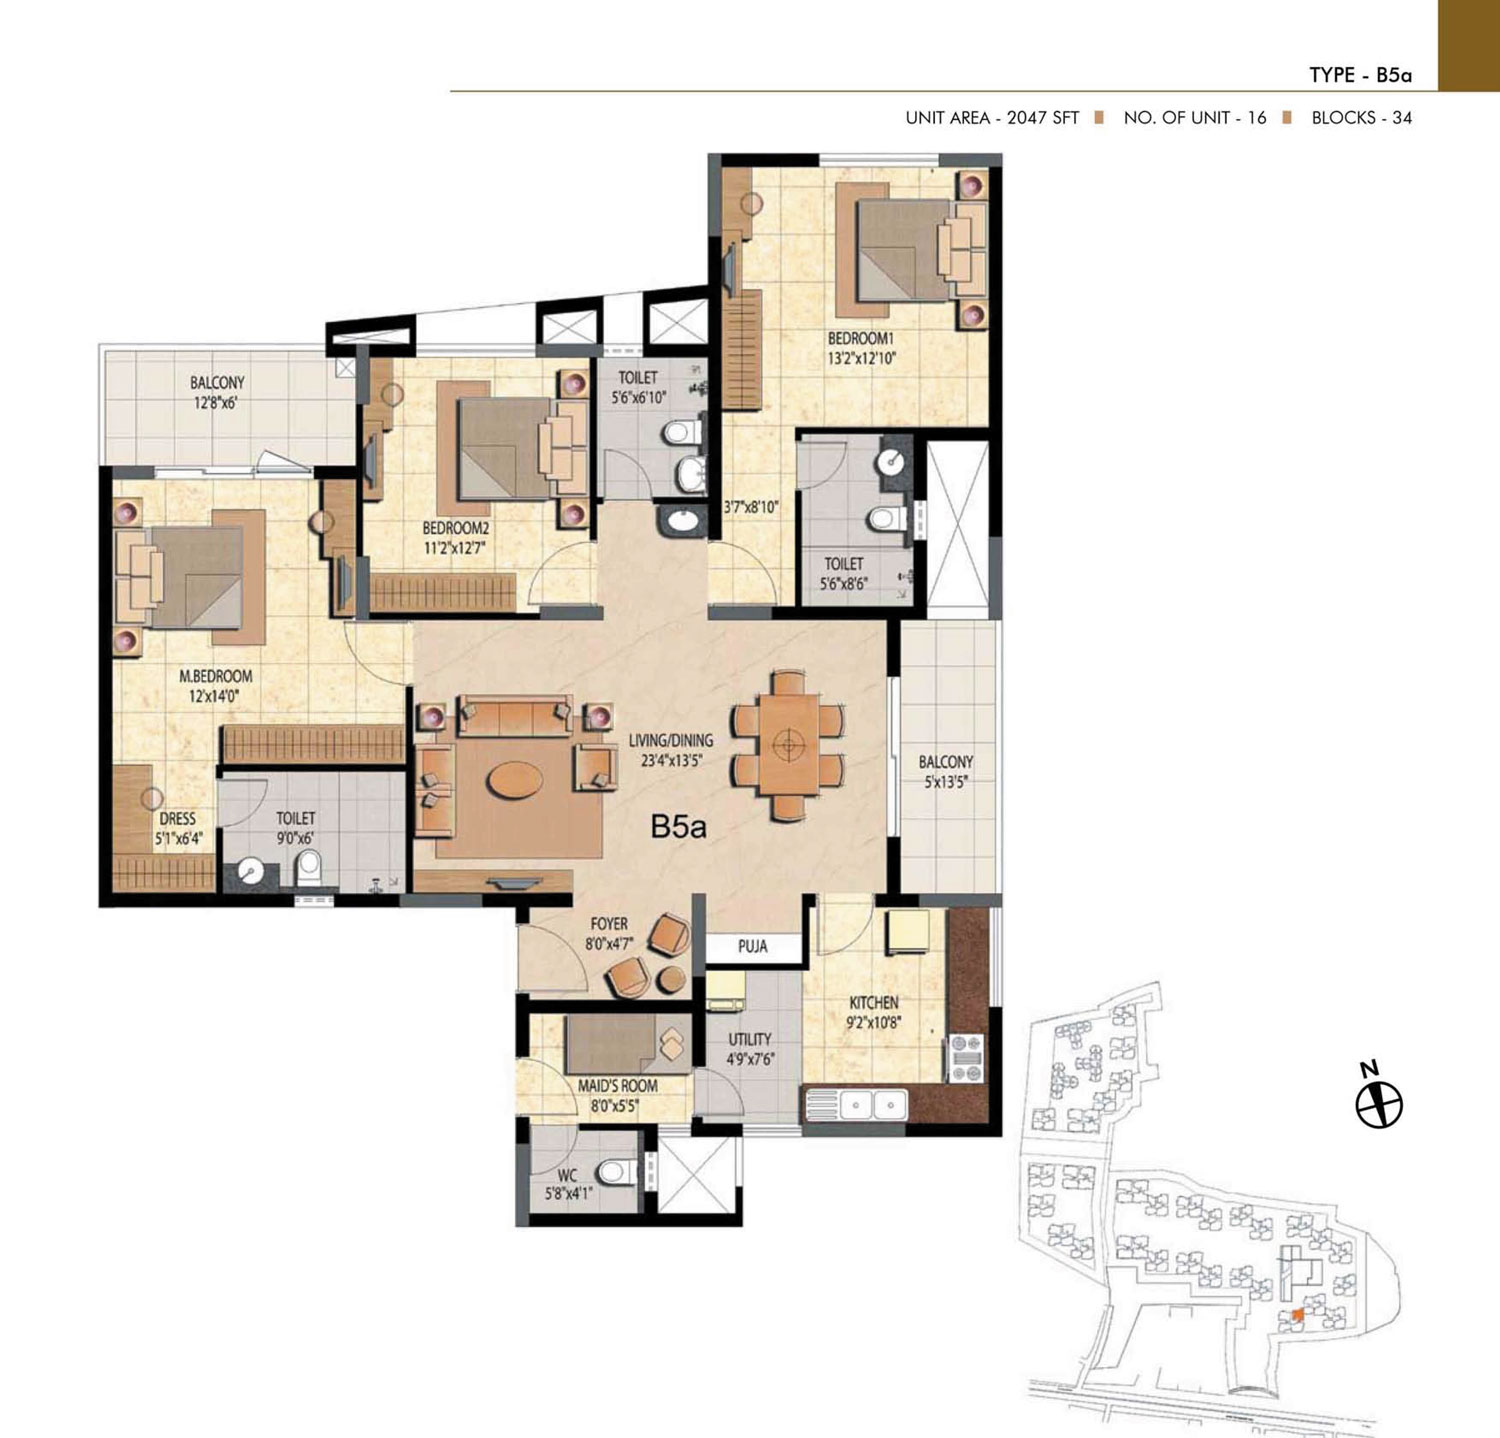 Type B5A - 3 Bed - 2047 Sq Ft